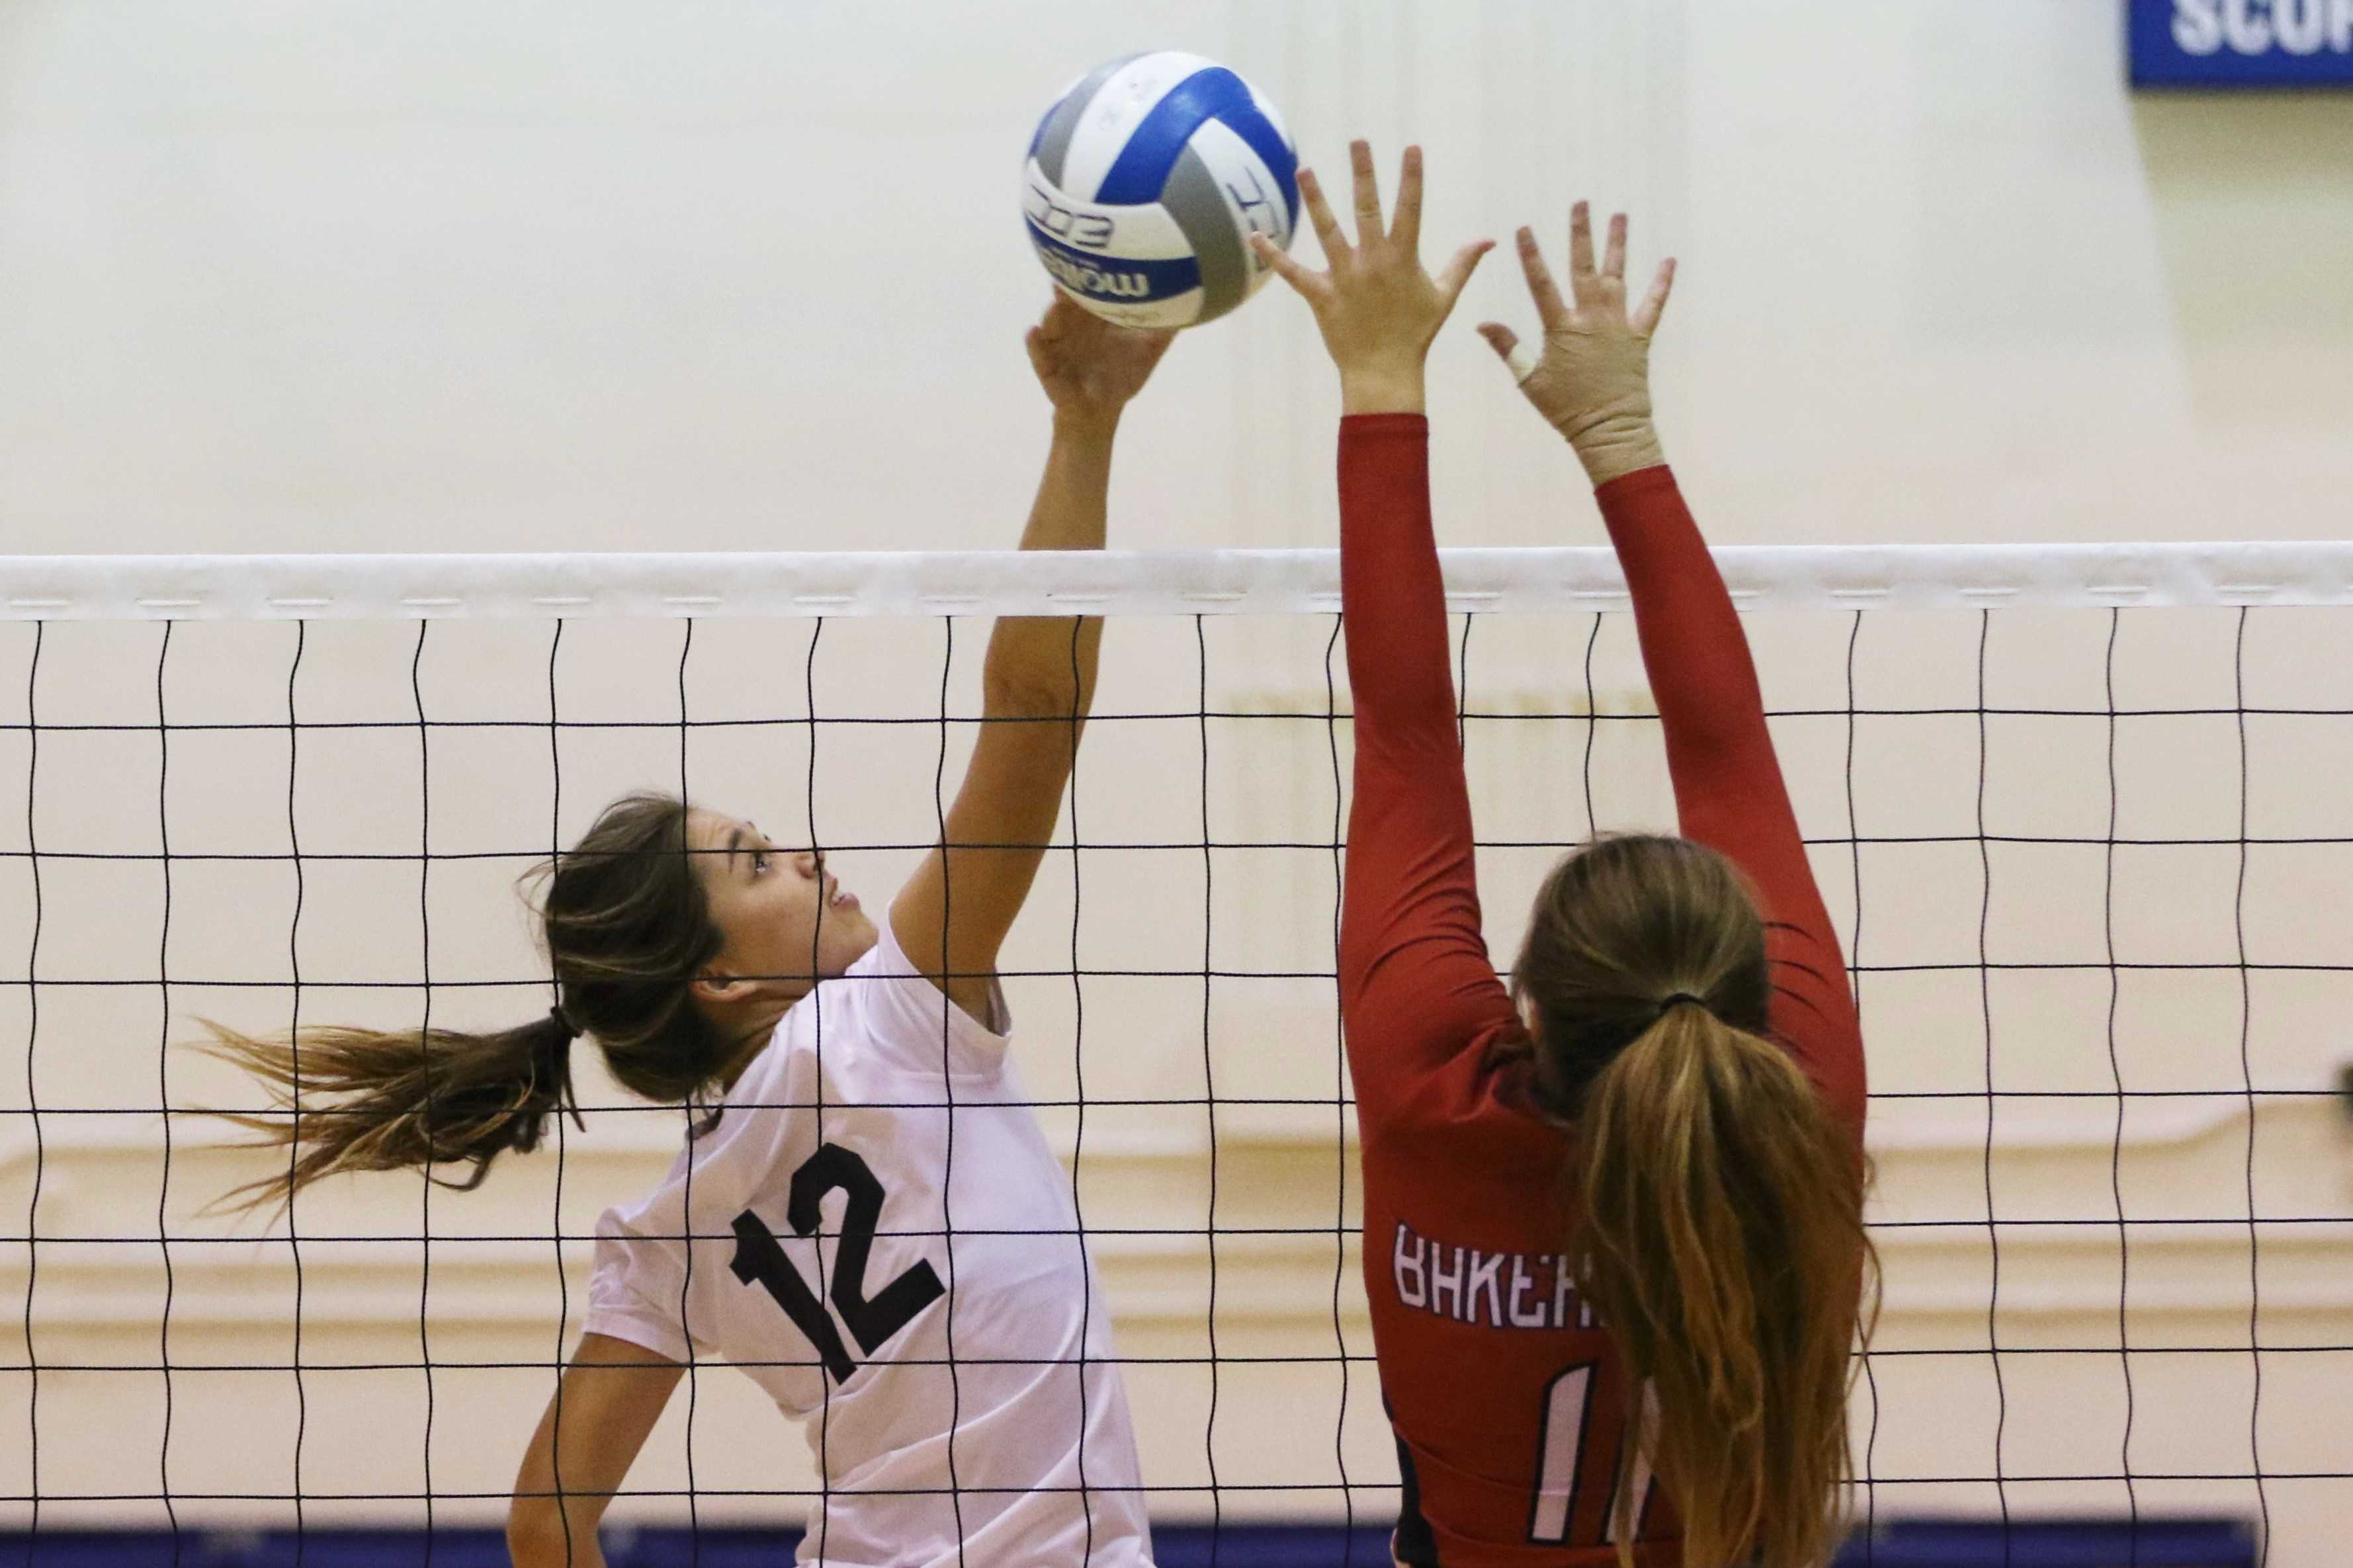 Women's volleyball takes down Bakersfield 3-1 in second round of playoffs